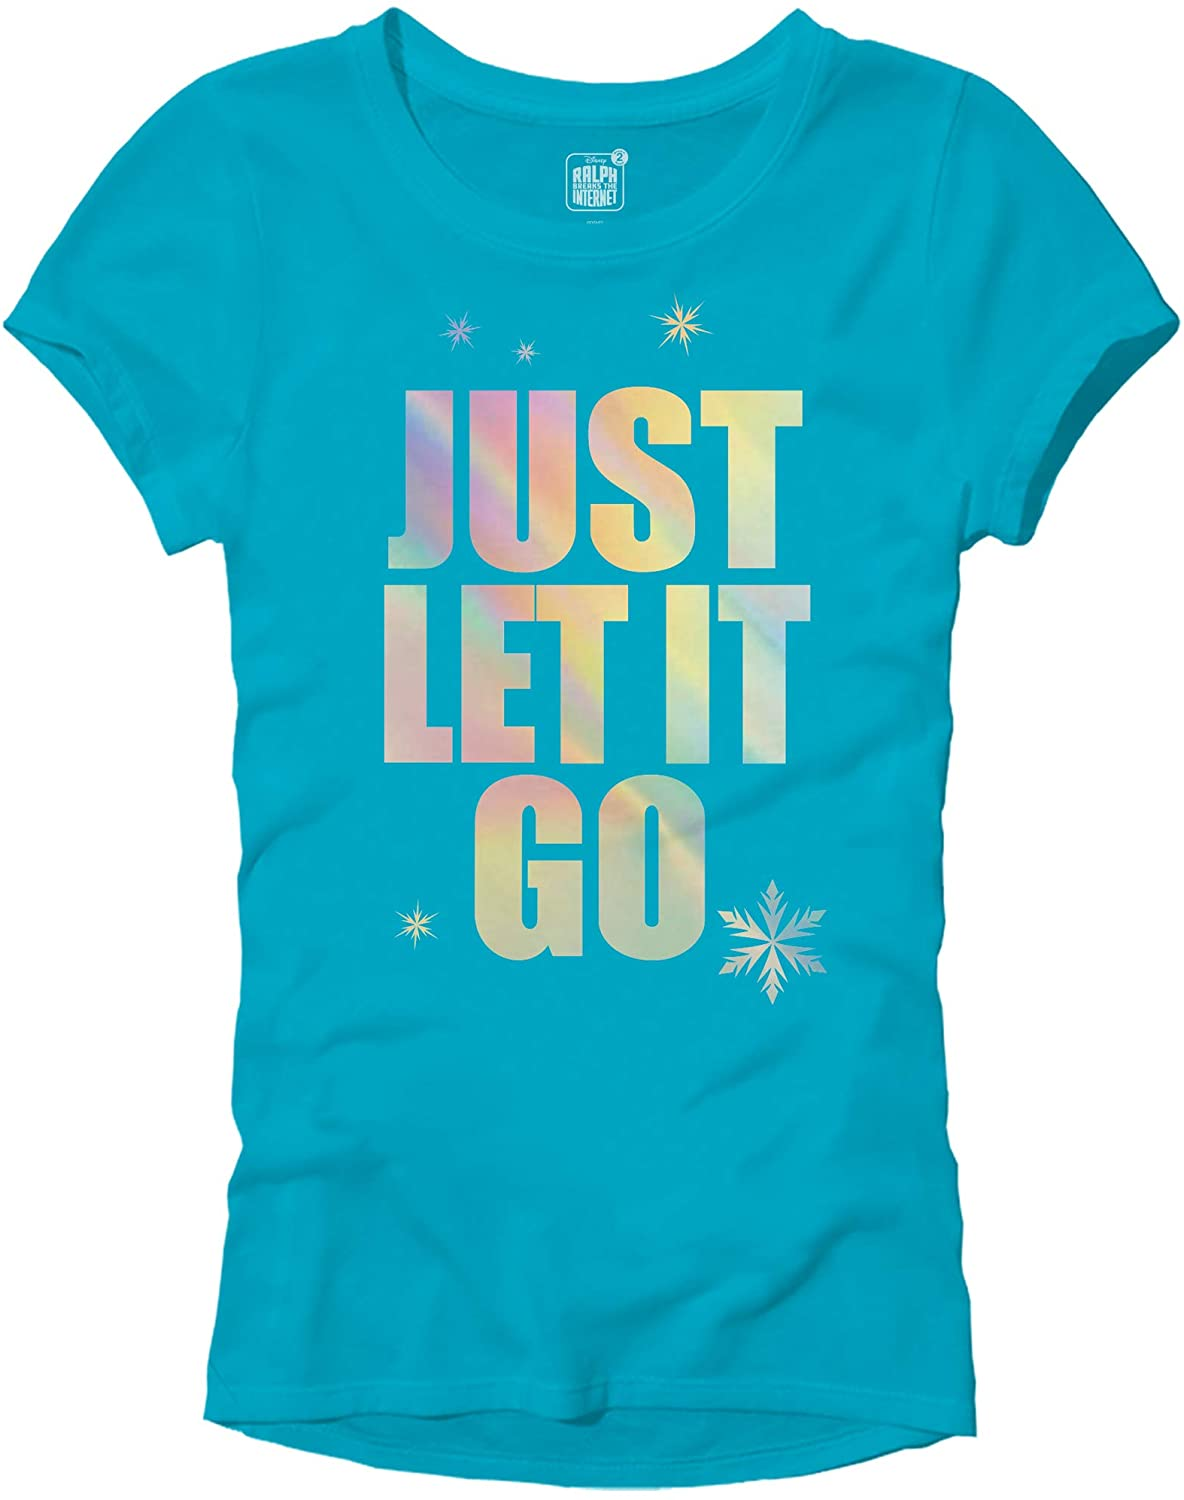 Disney Frozen Elsa Just Let It Go Comfy Princess Disneyland World Tee Funny Women's Graphic Juniors T-Shirt